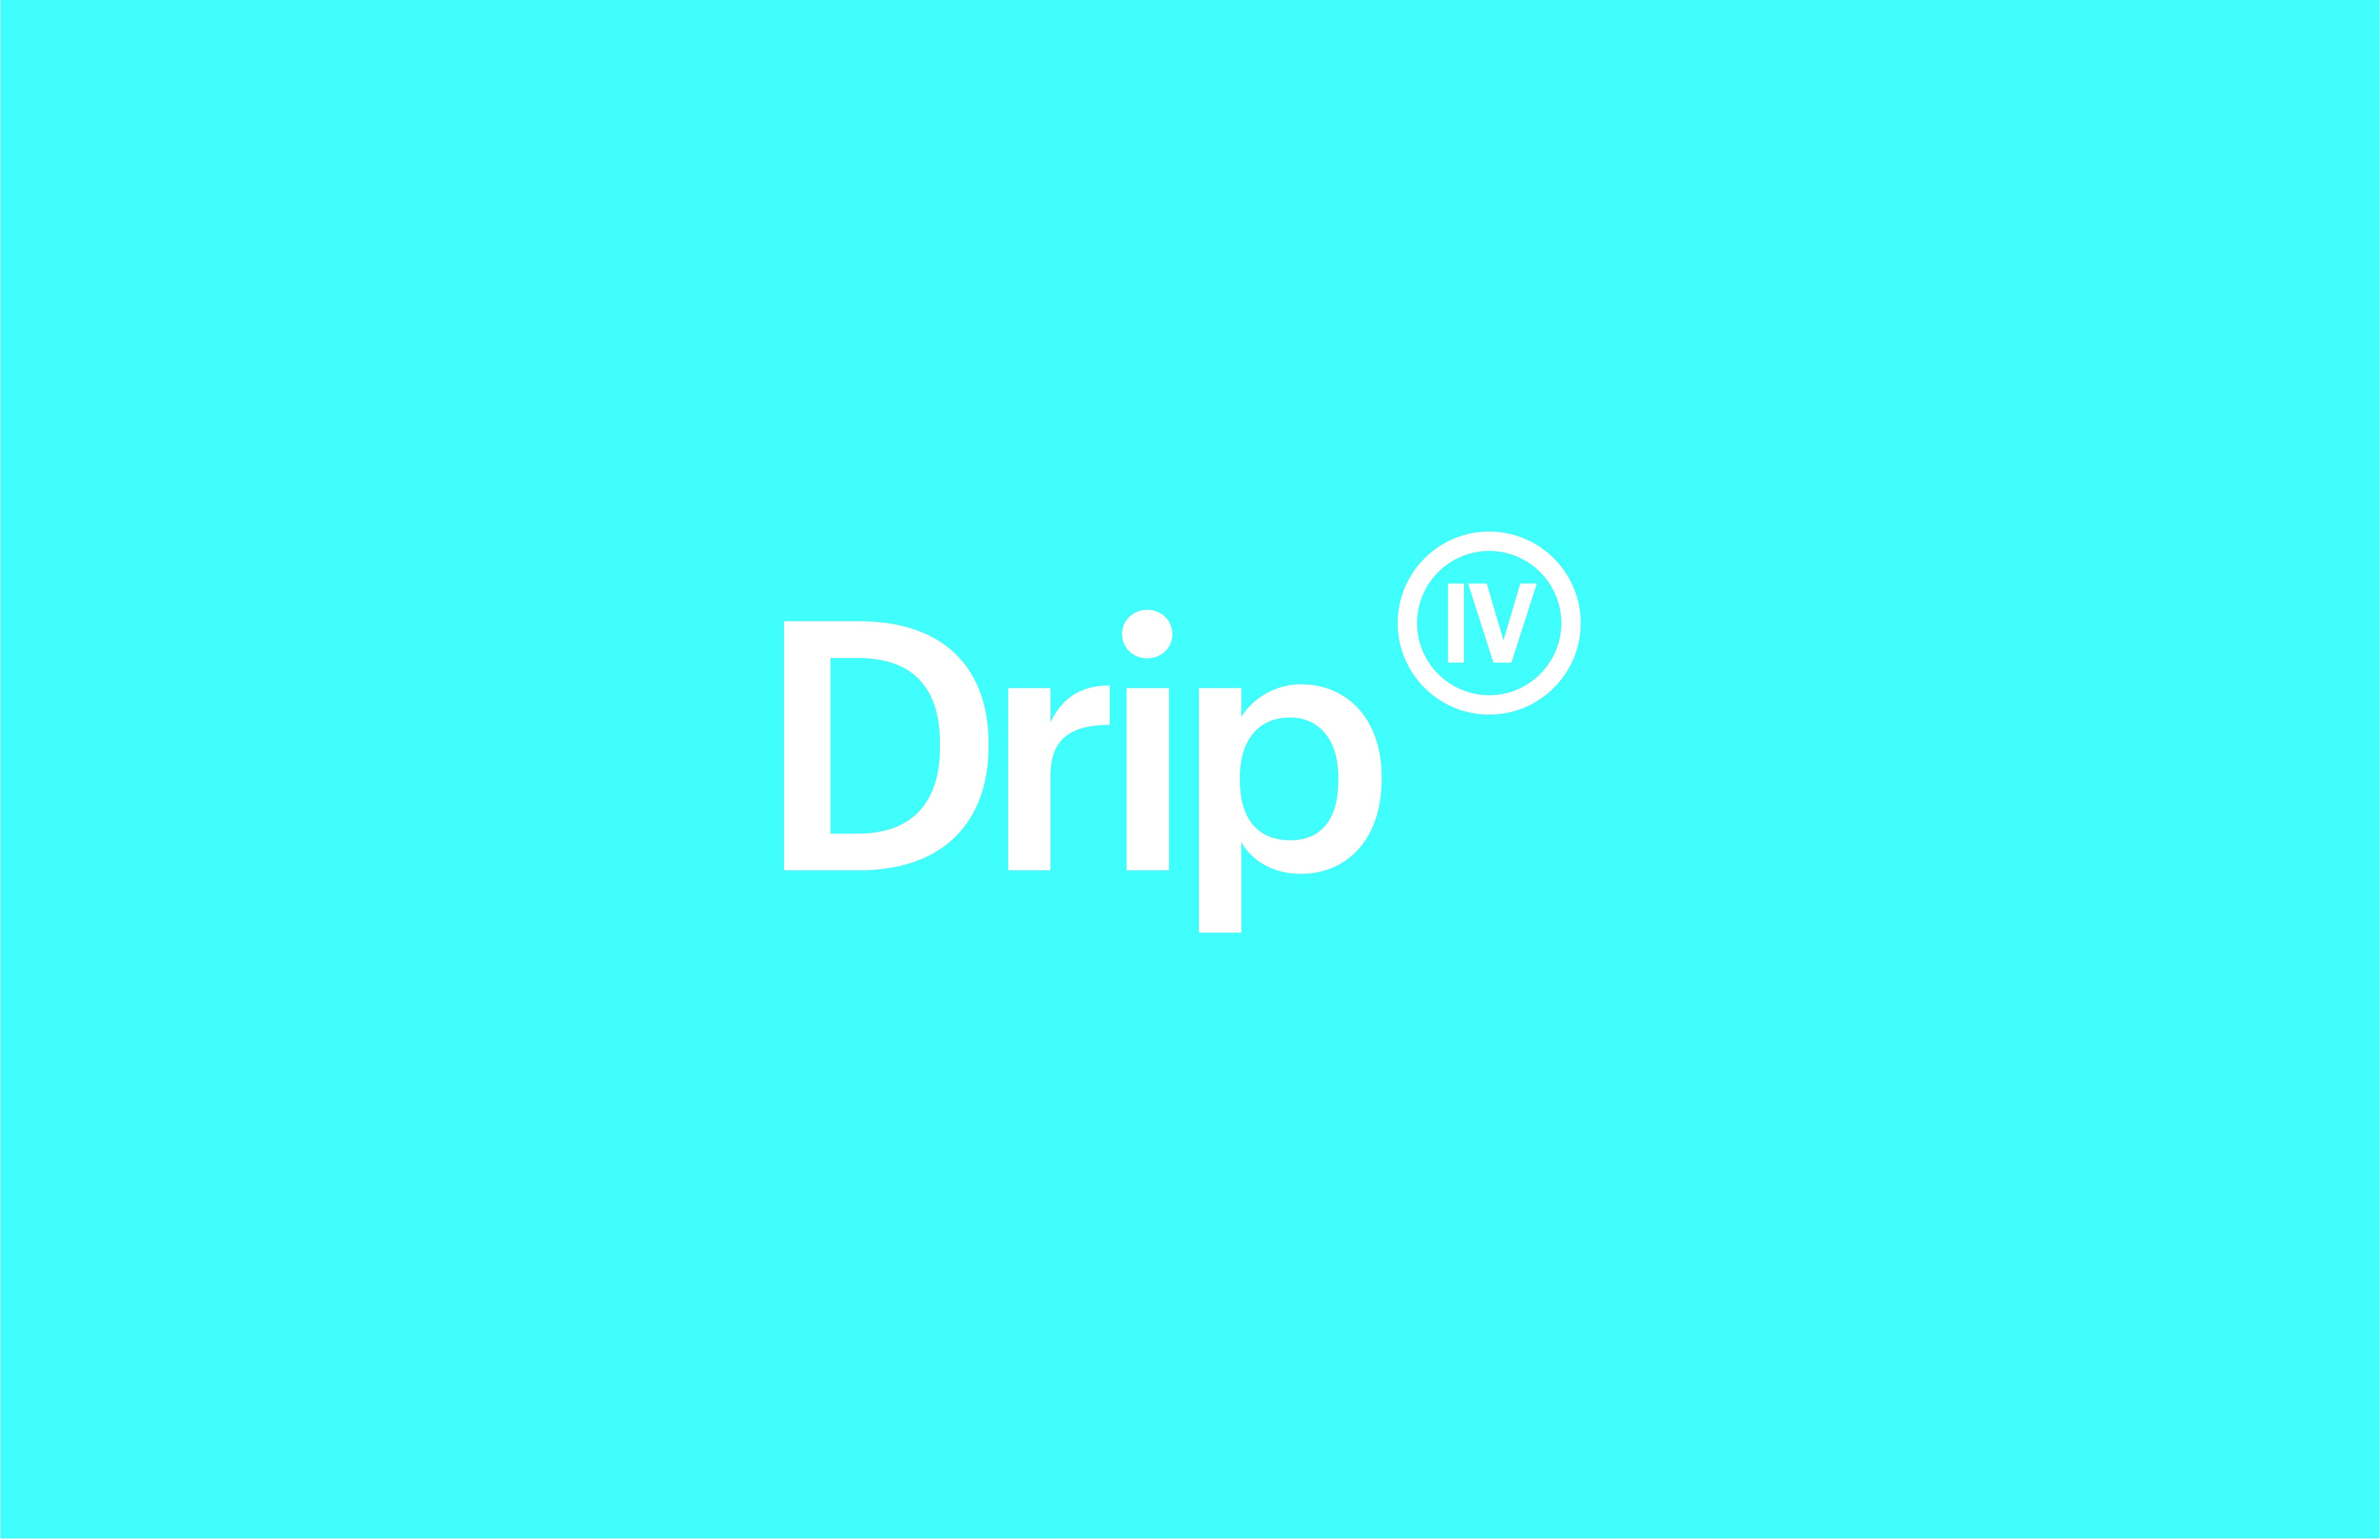 Drip IV Therapy + Mobile - Logo